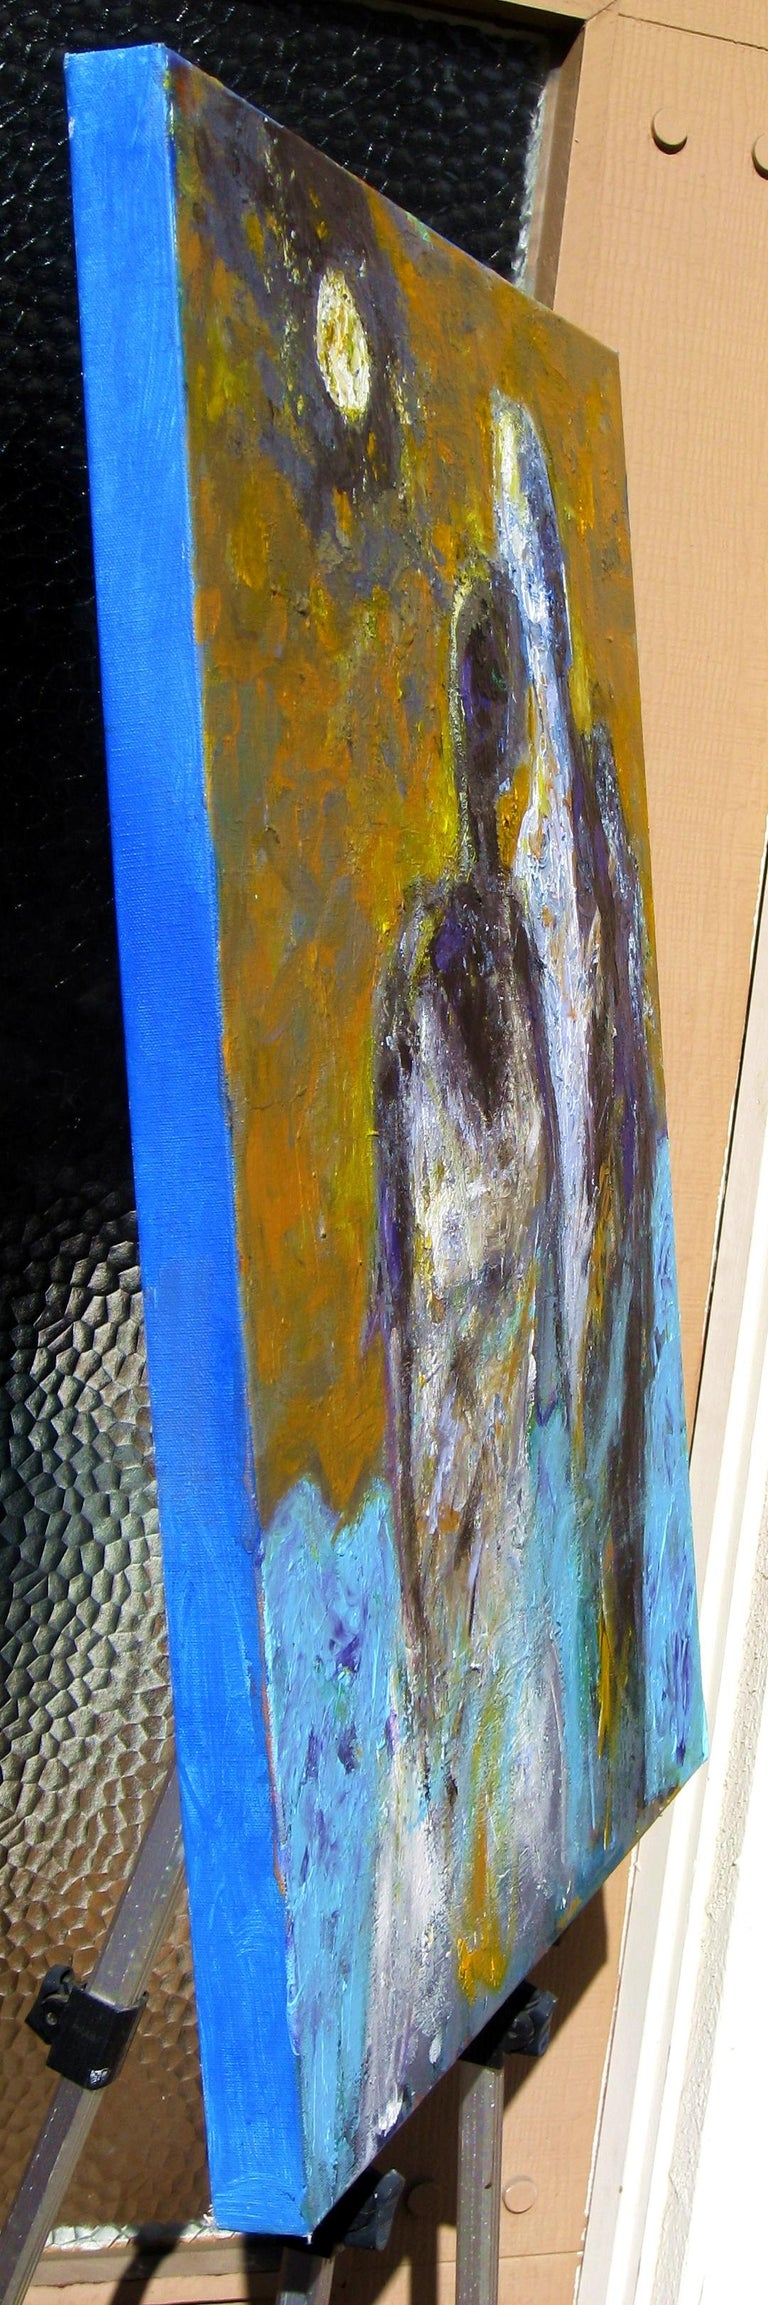 A Moment Captured - Abstract Expressionist Art by Ron Klotchman